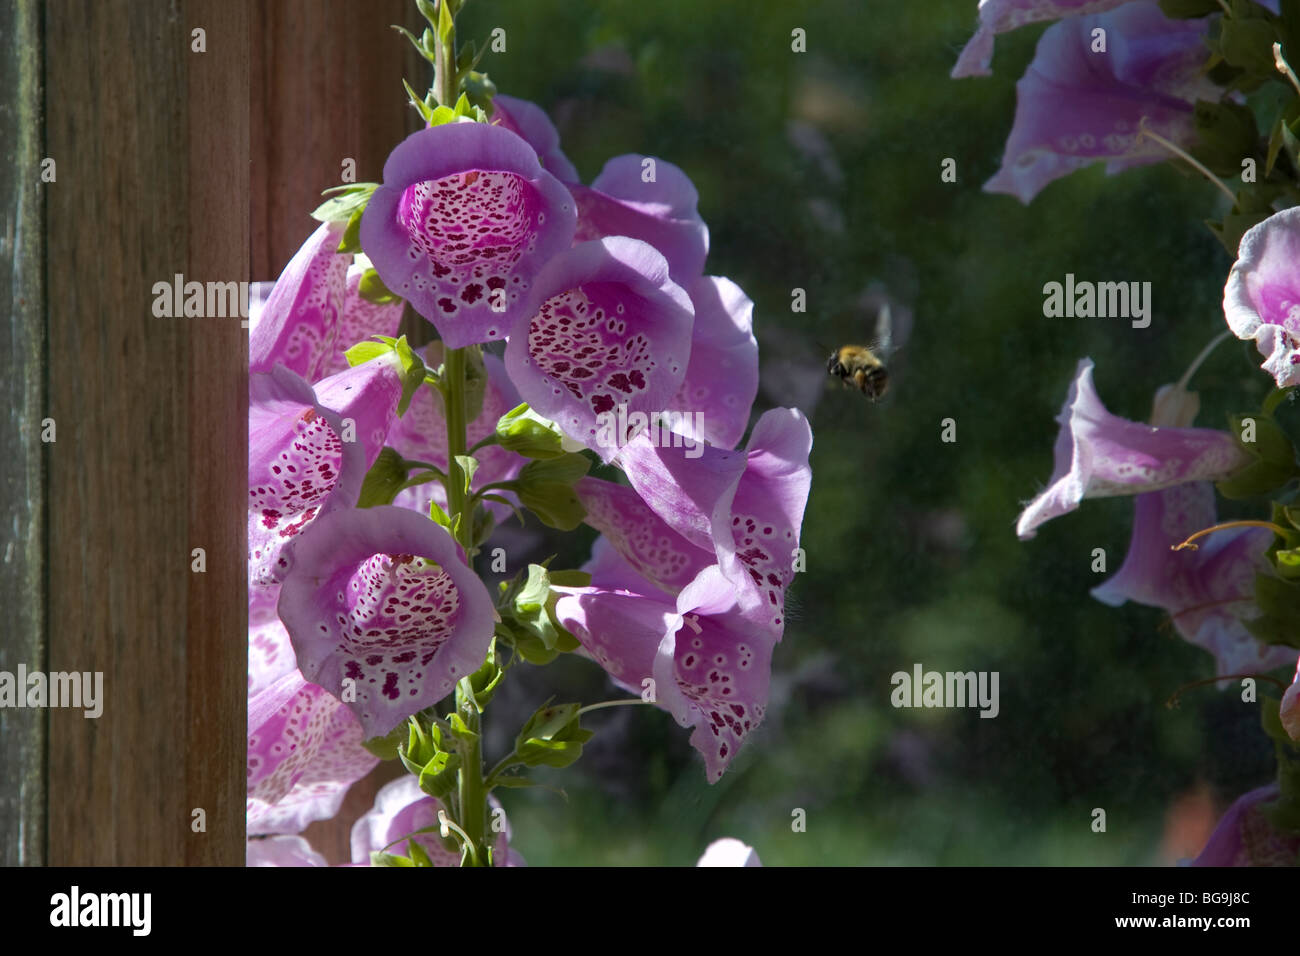 A bee collecting nectar from a foxglove flower. - Stock Image